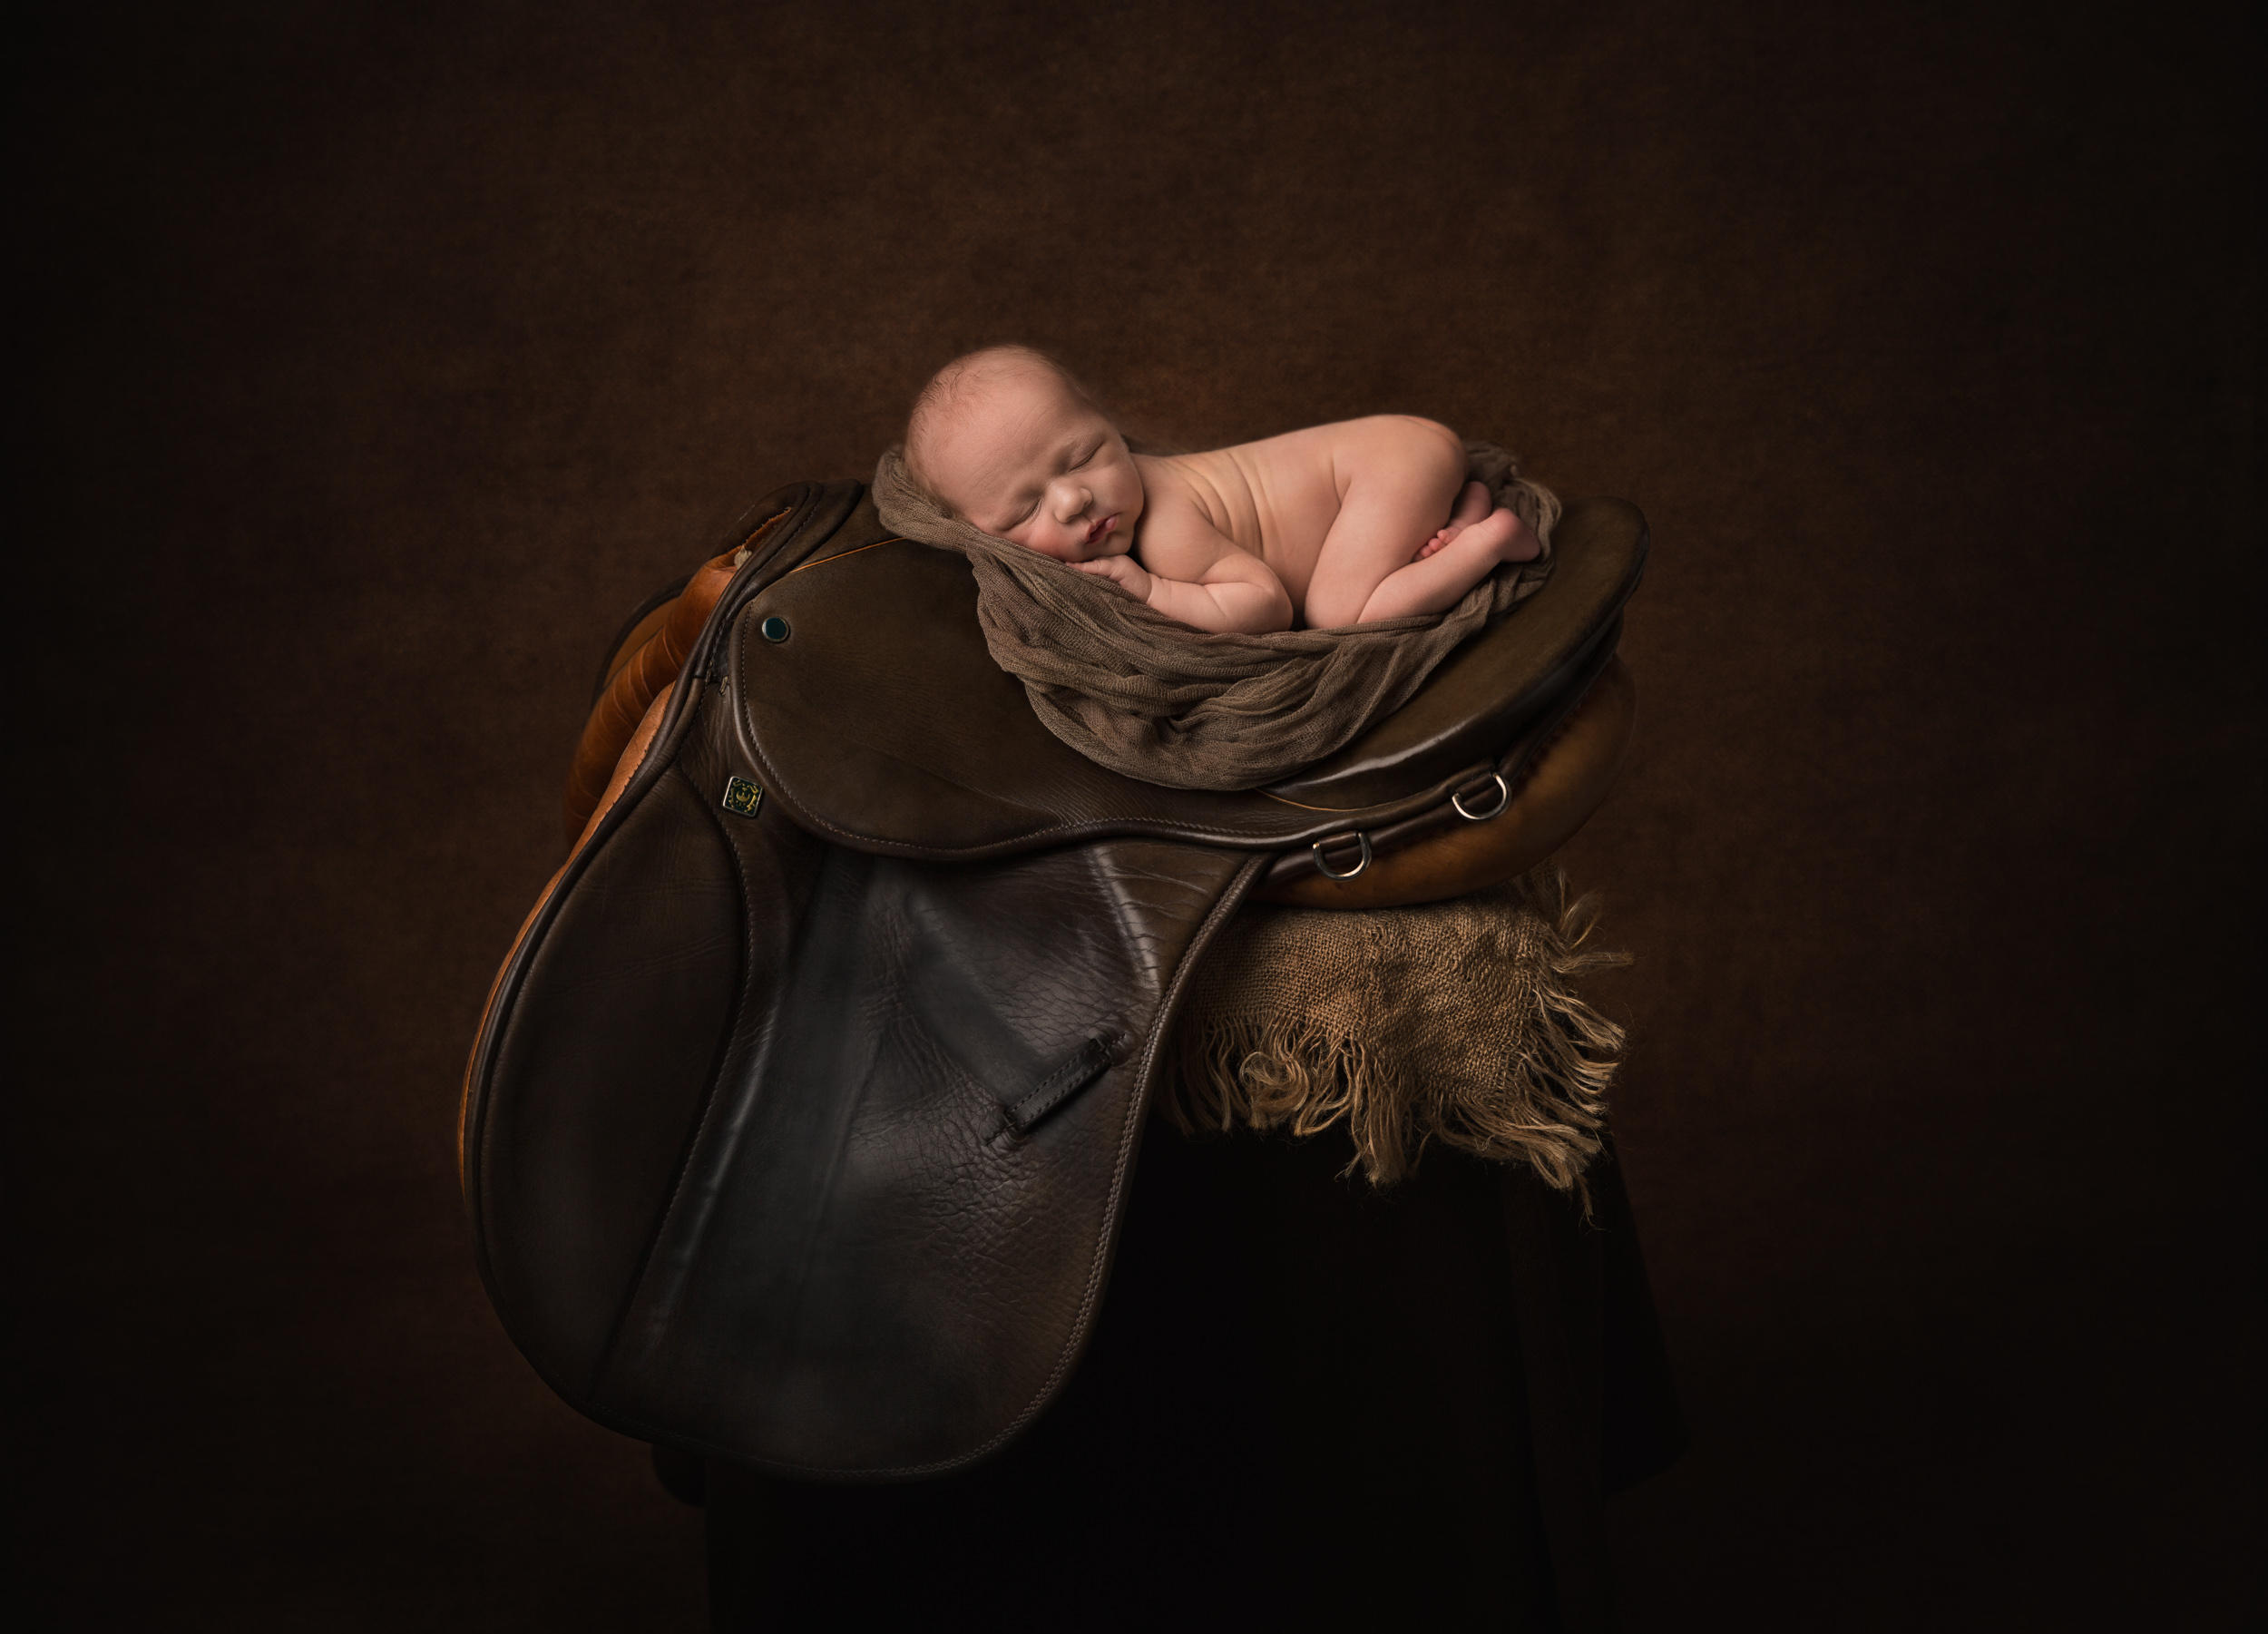 Baby posed on a horse's saddle by Cheshire newborn photographer in Sandbach